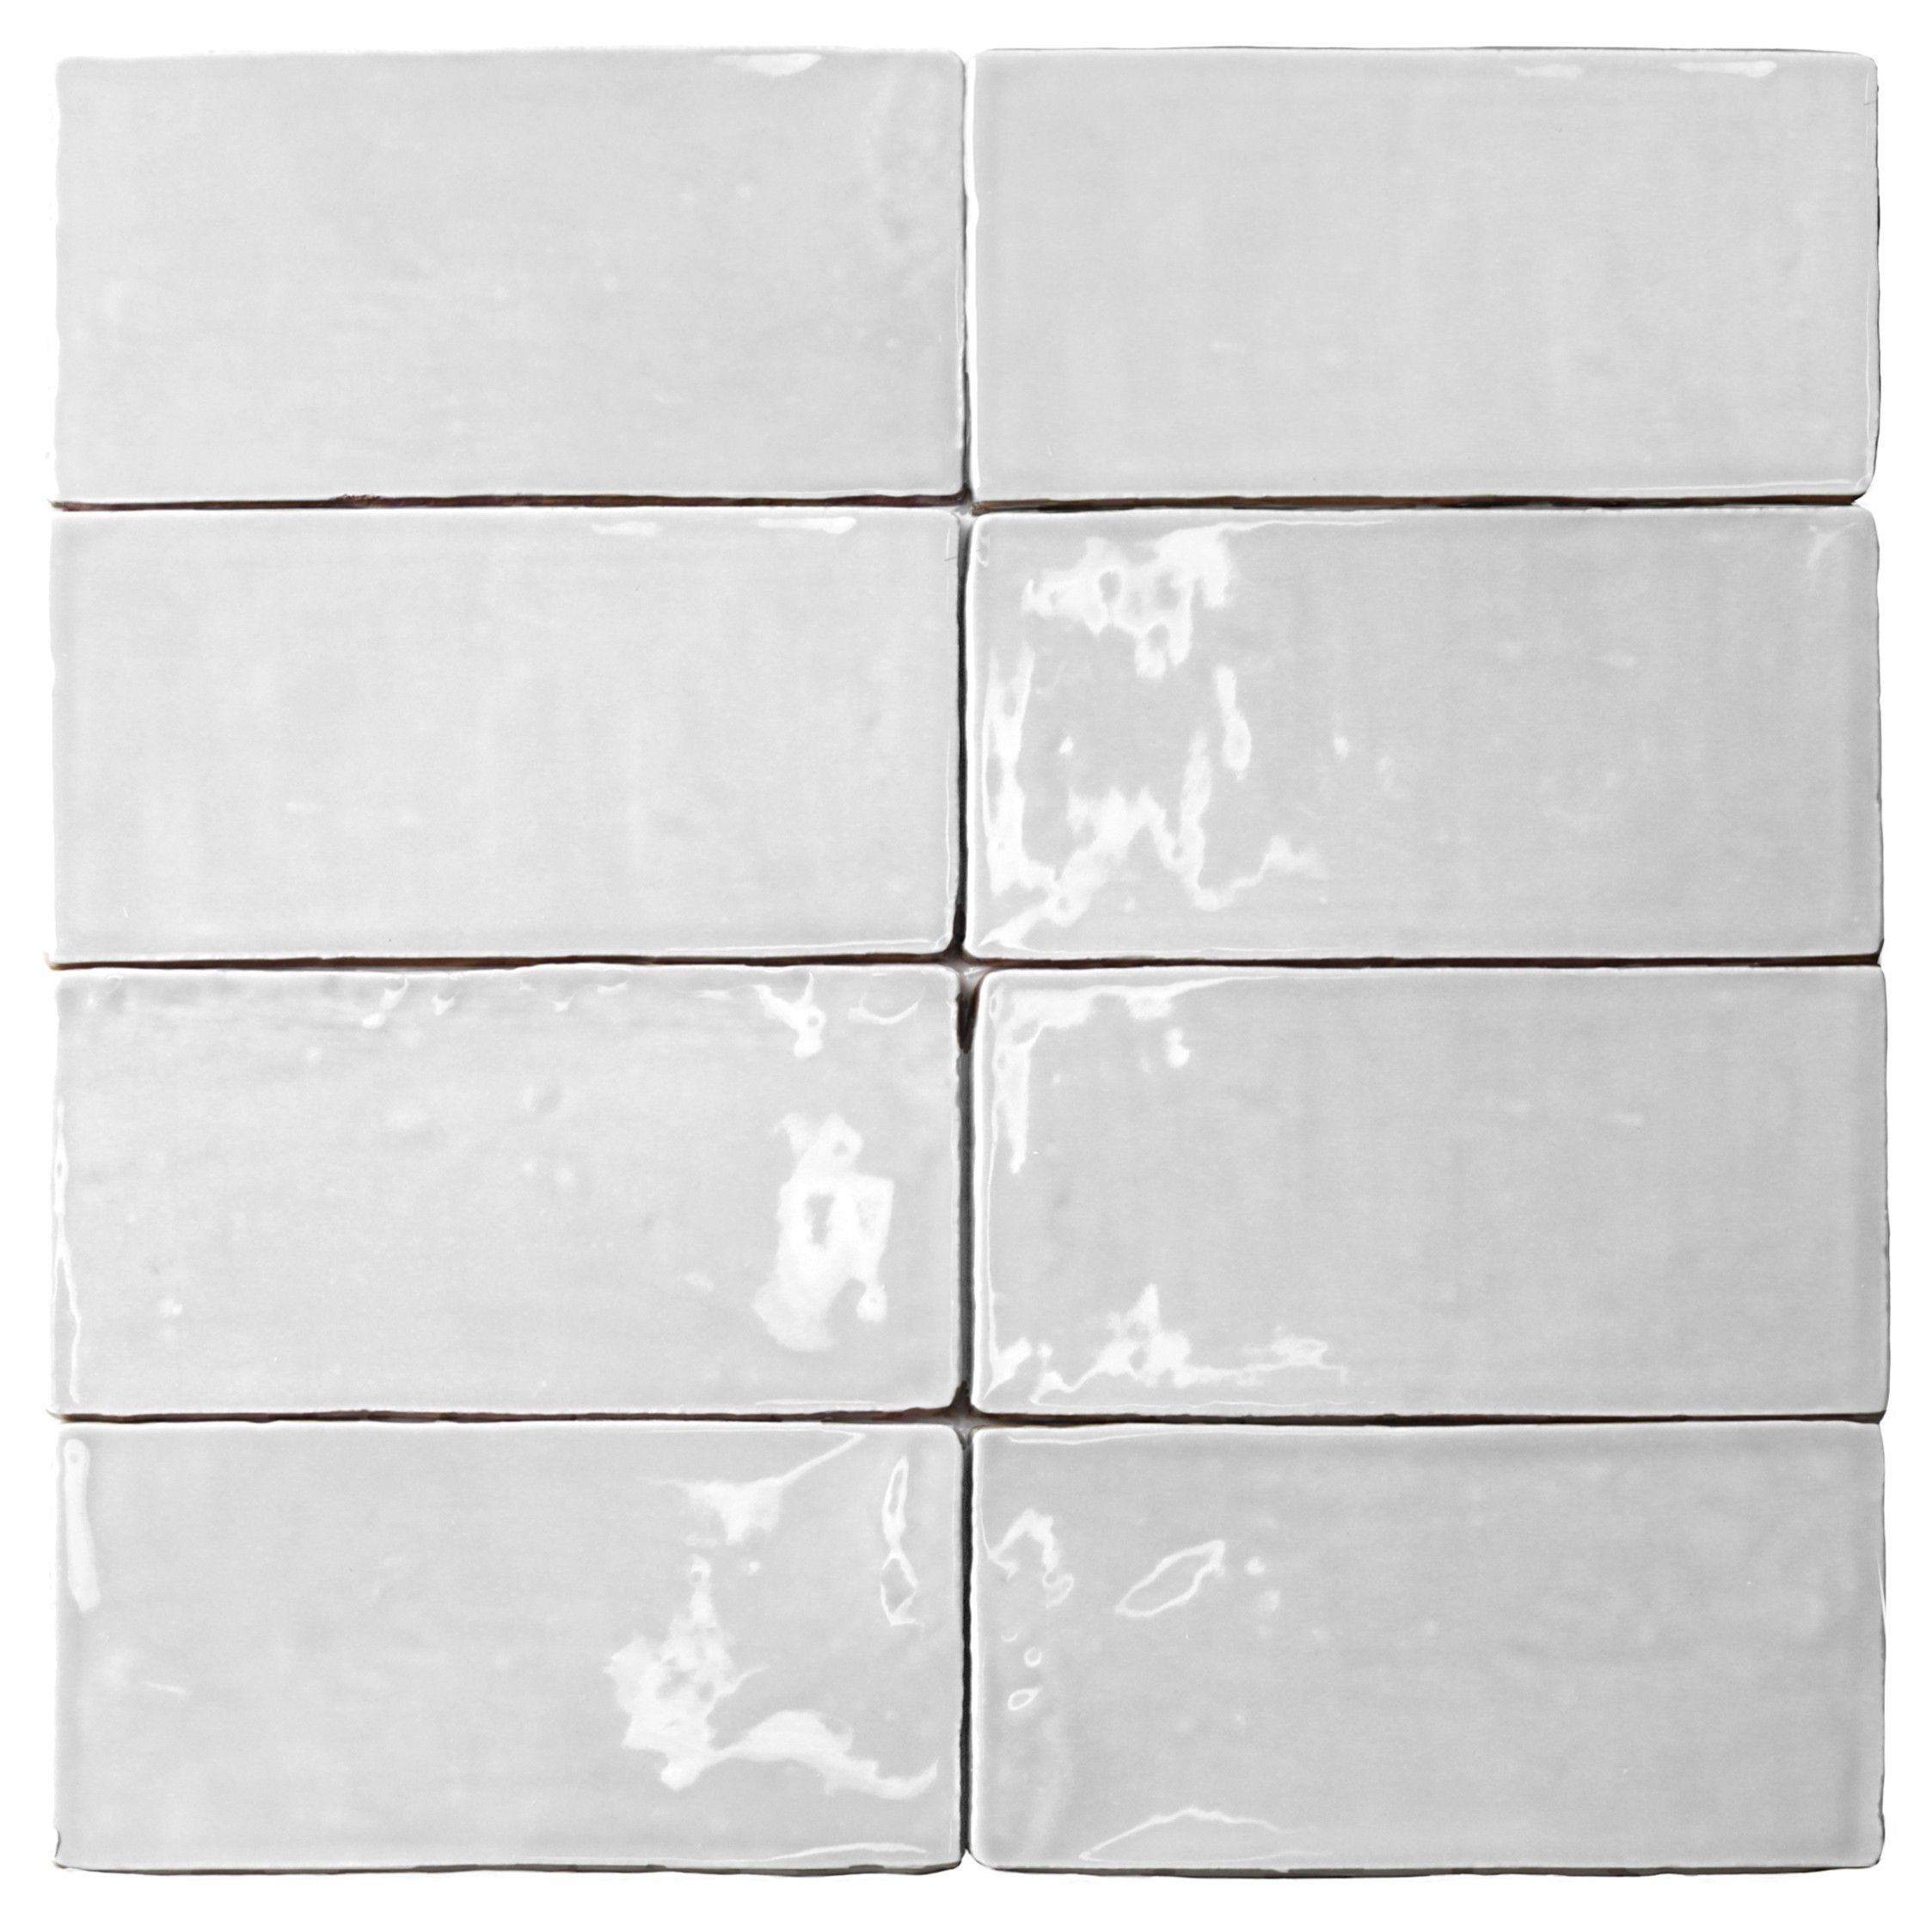 Lancaster 3x6 bianco polished ceramic tile step 1 try before you lancaster 3x6 bianco polished ceramic tile step 1 try before you buy step 2 ready dailygadgetfo Image collections